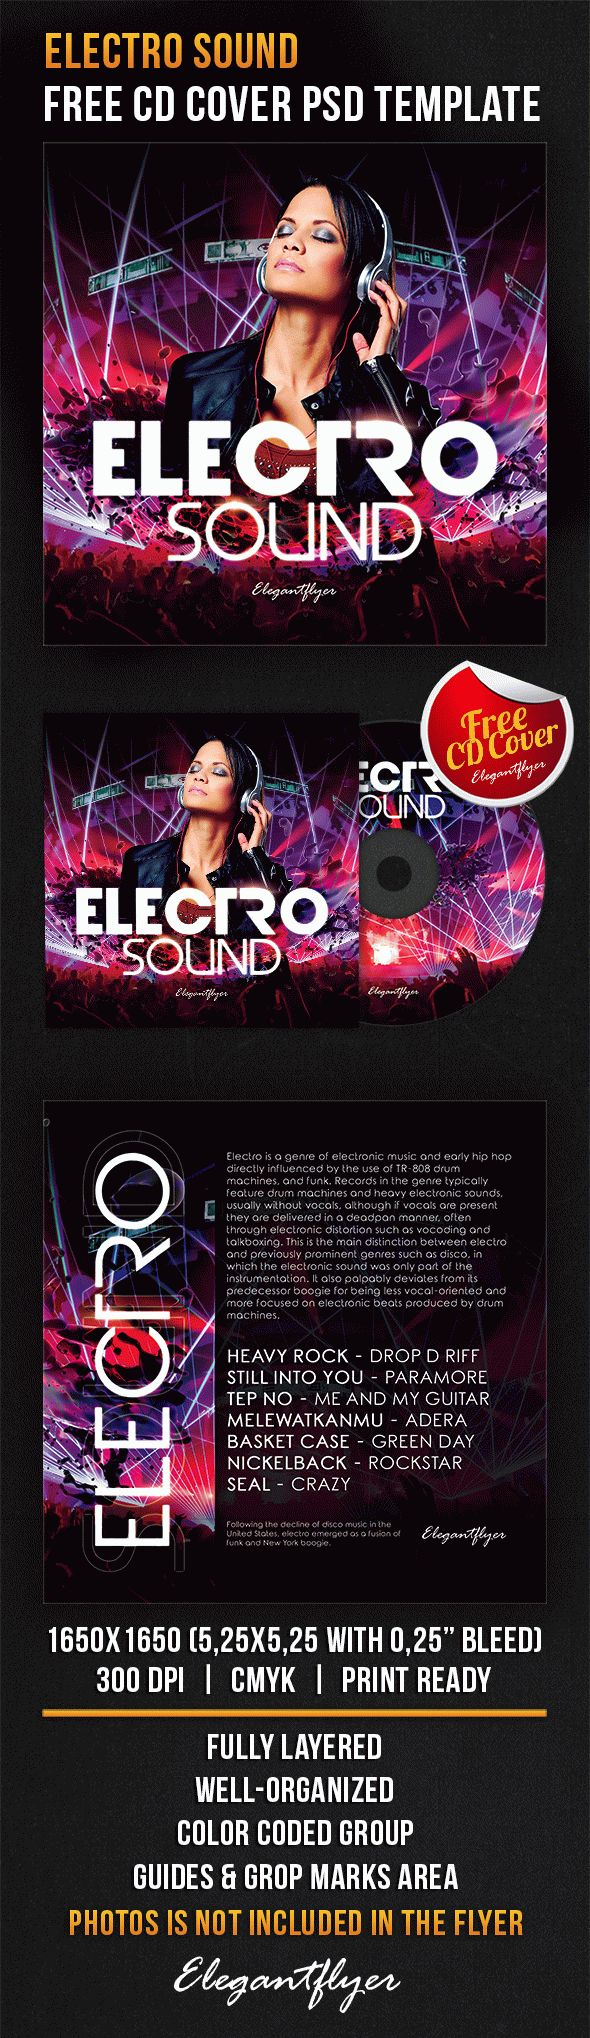 Electro Music Free CD Cover Template